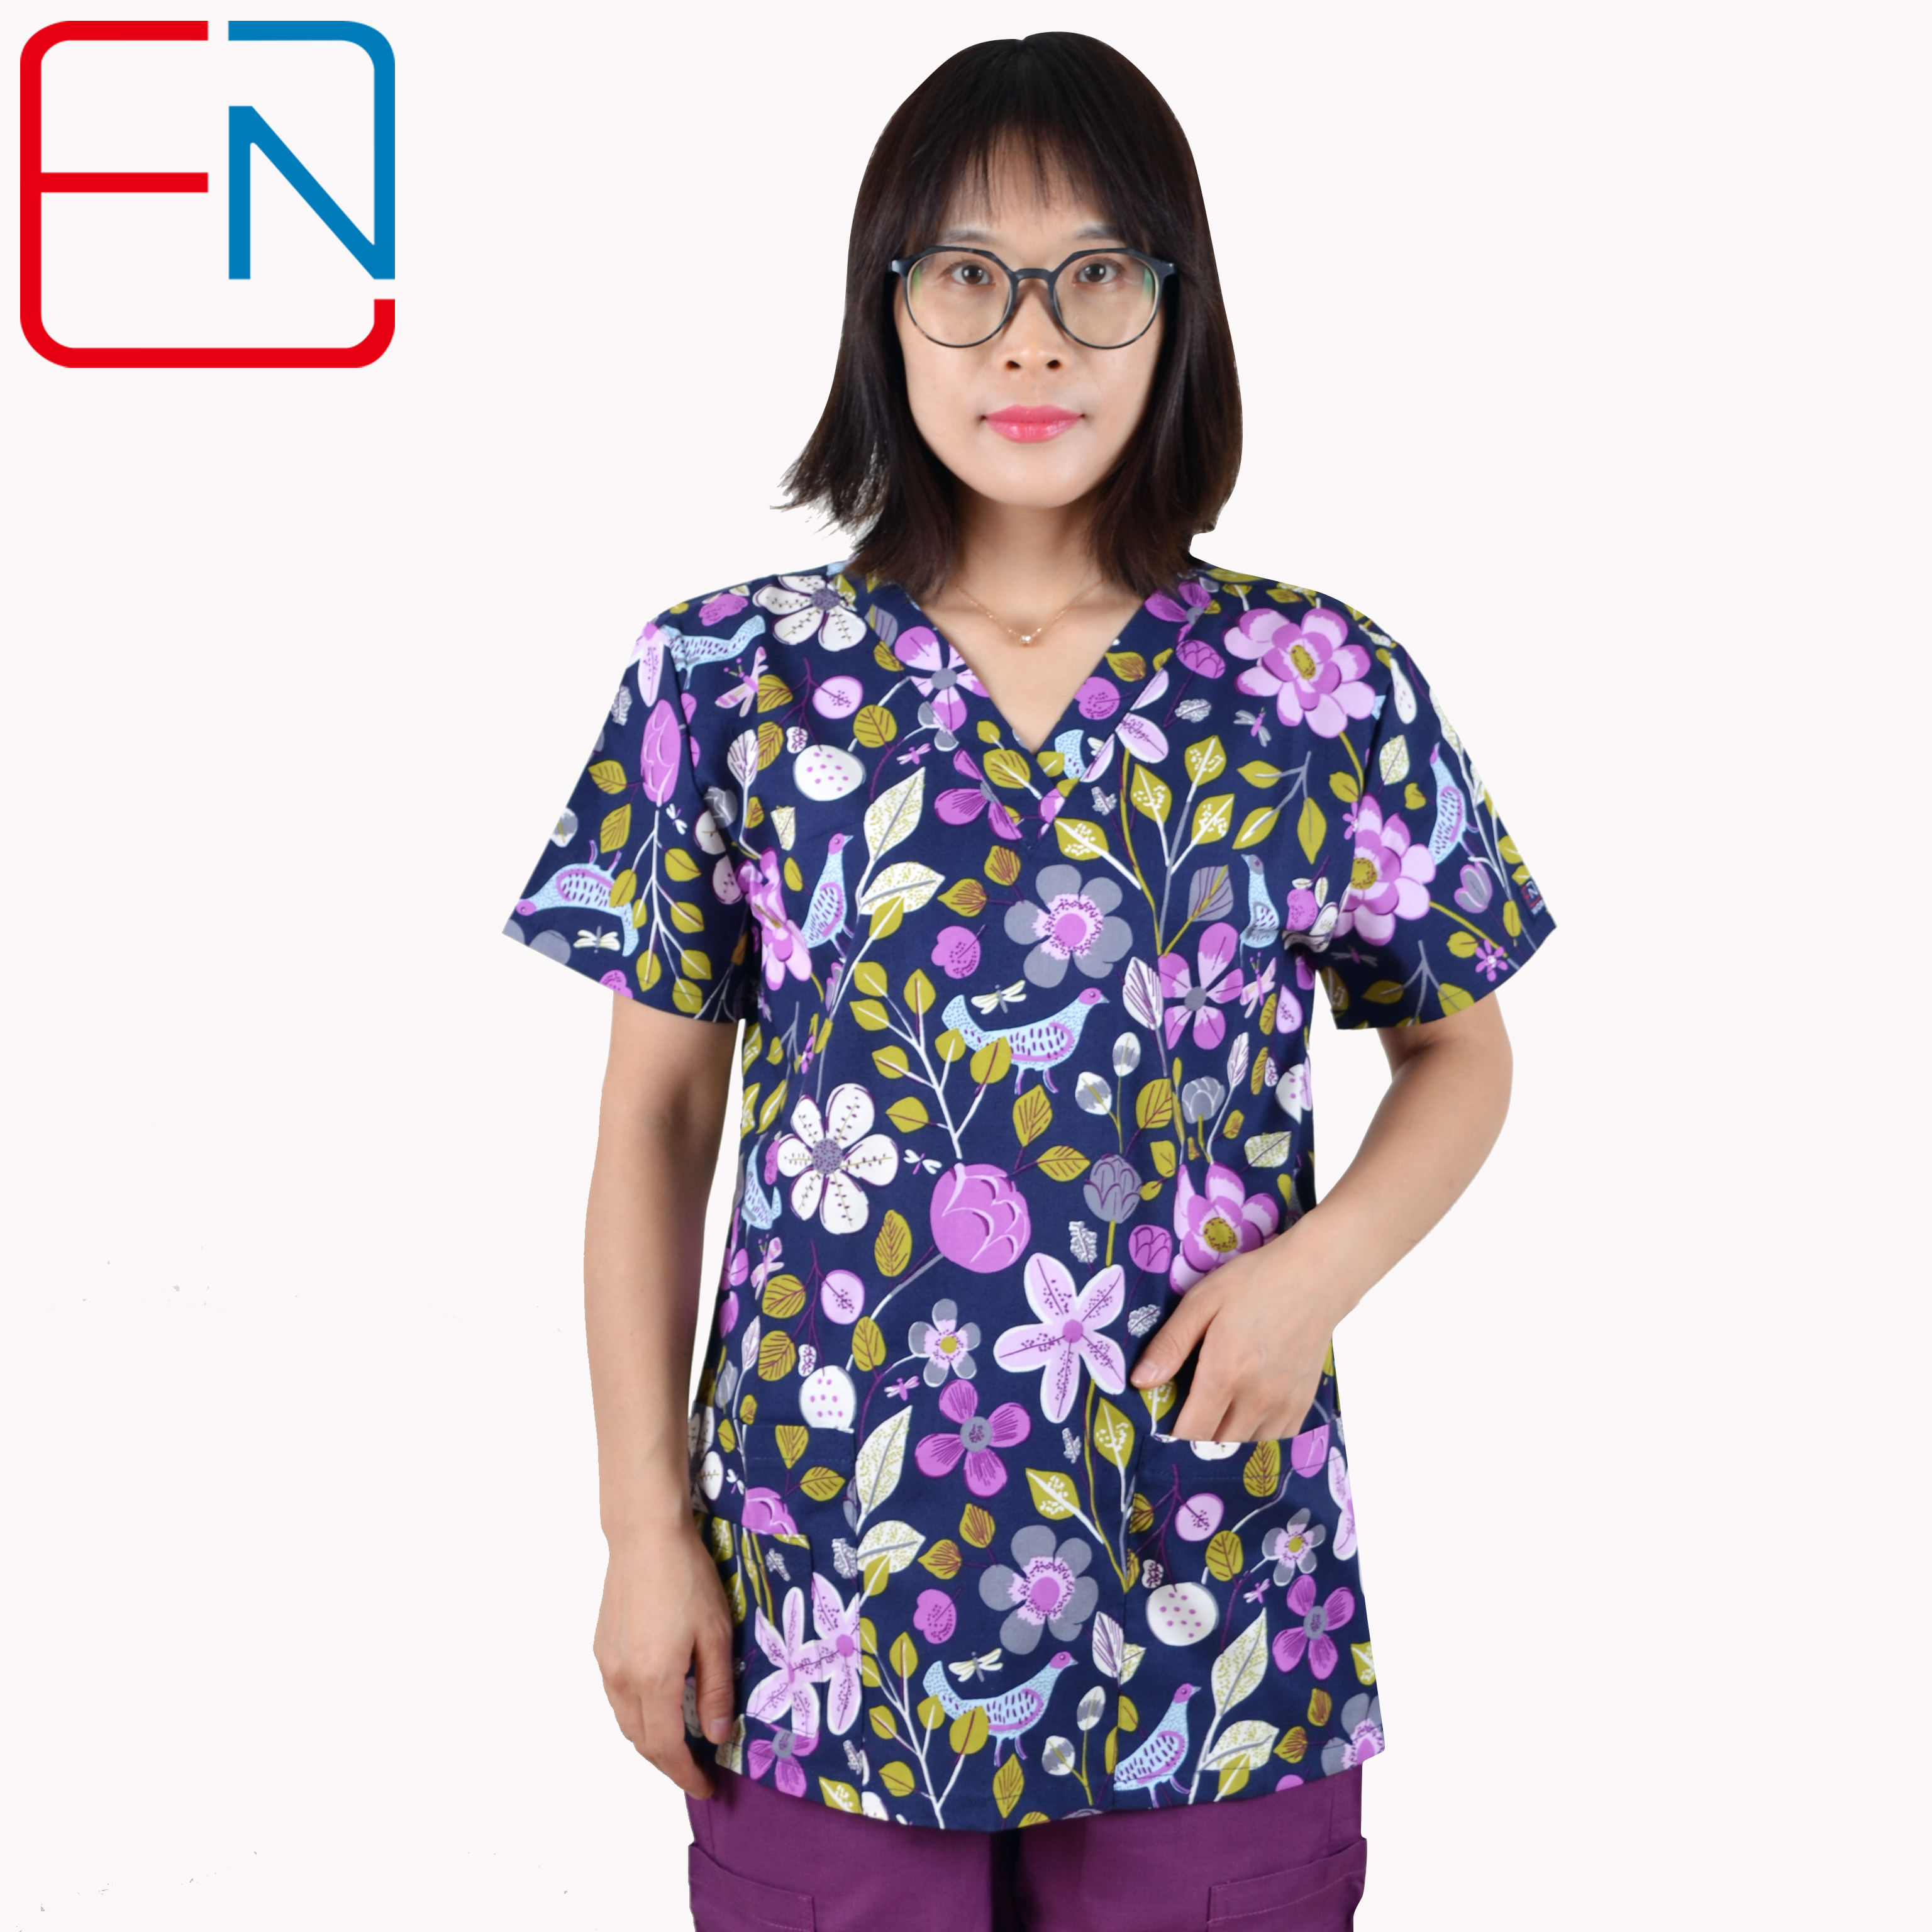 Brand Medical Scrub Uniform Tops For Women  In 100% Print Cotton 4 Pockets,xxs-XXXL